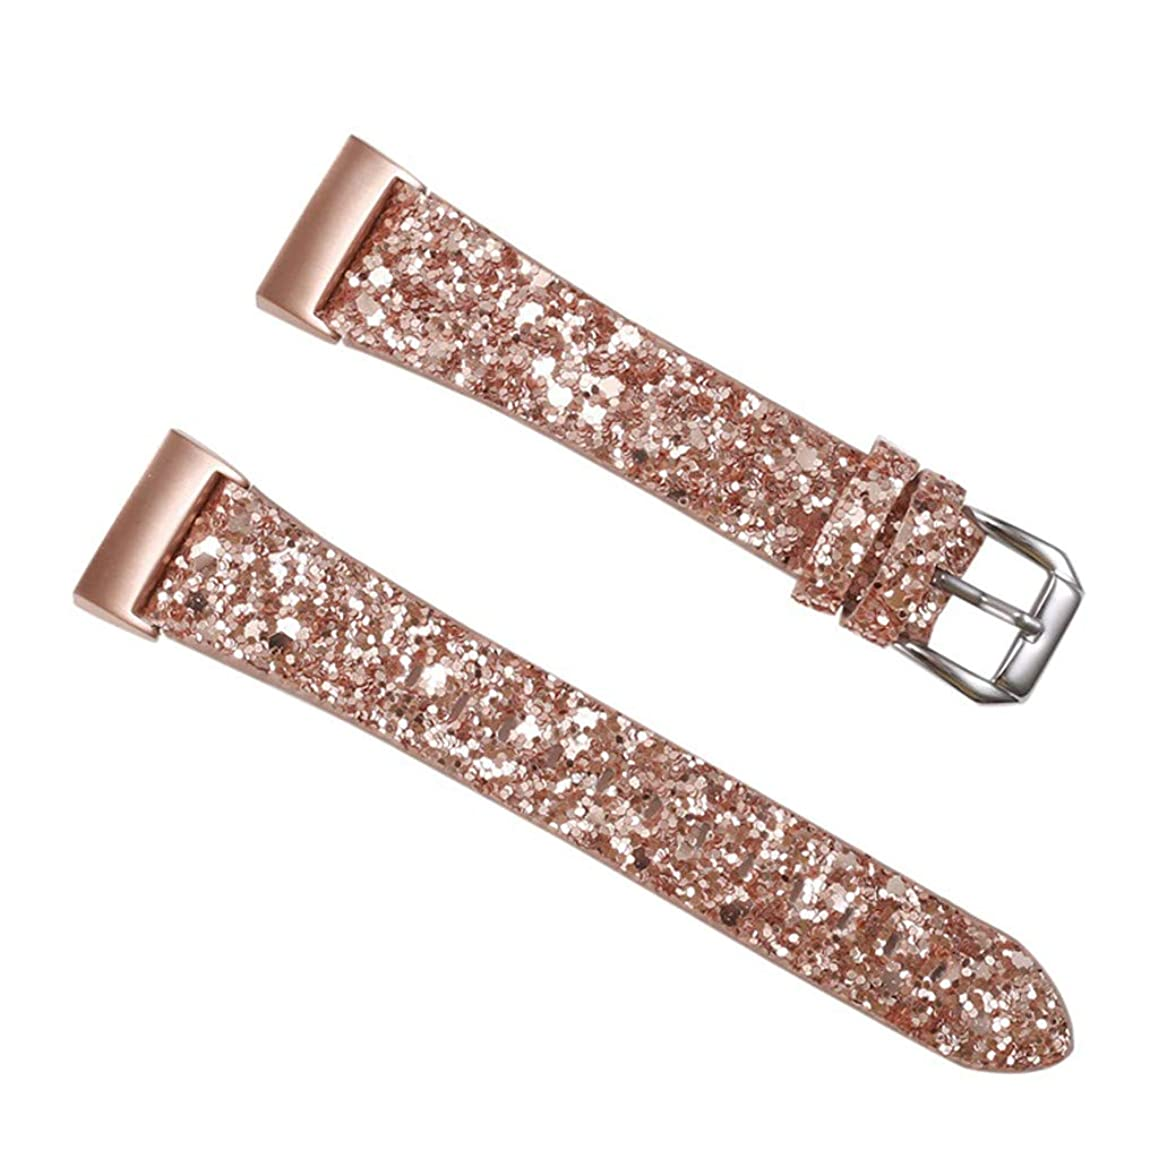 Startview Shinning Bracelet Smart Watch Replacement Band Strap Wrist Strap for Fitbit Charge 3